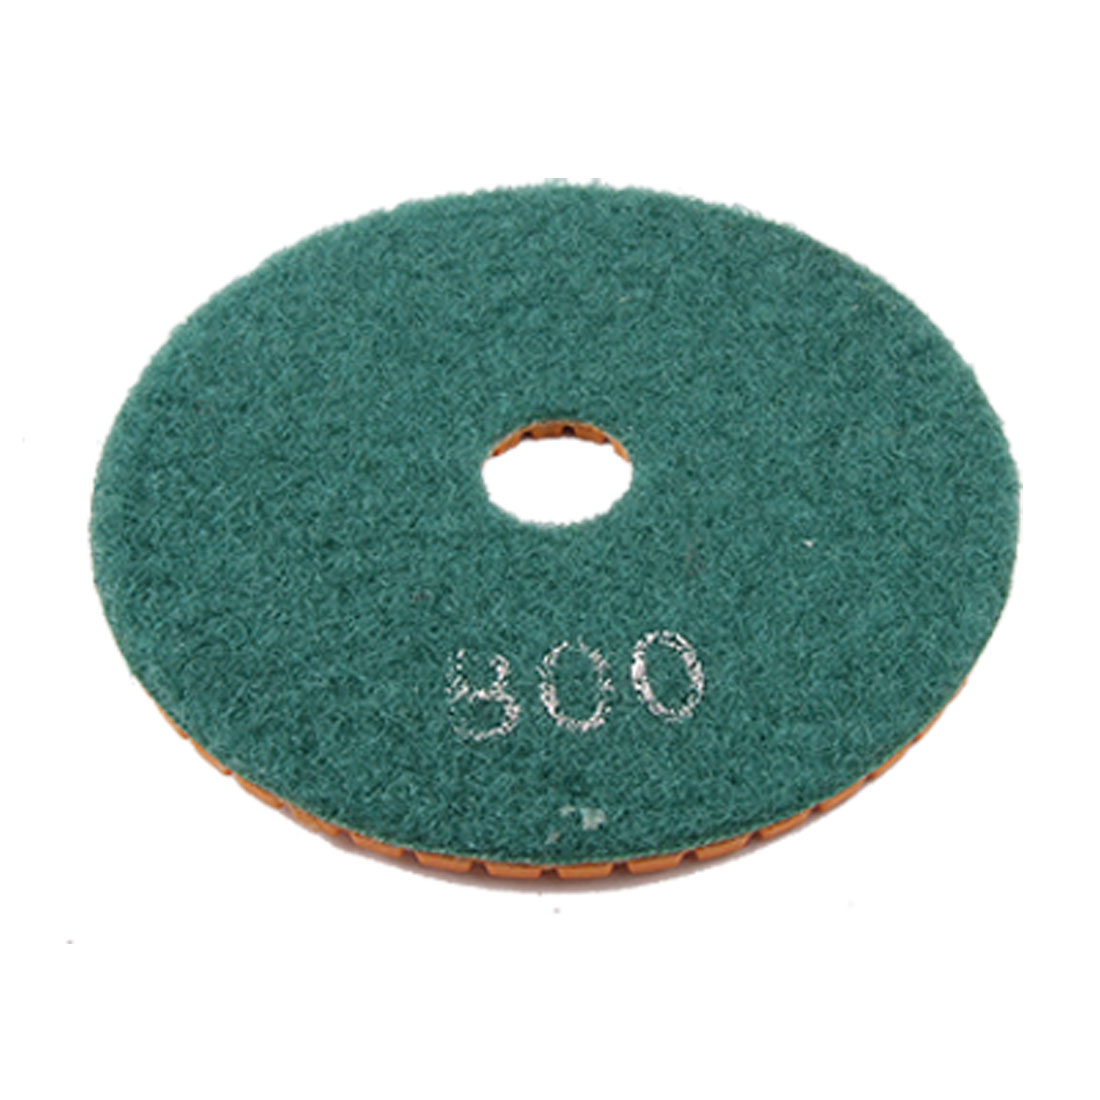 "Granite Marble Stone 4"" 800 Grit Diamond Resin Polishing Pad Disc 5.5mm Thick"